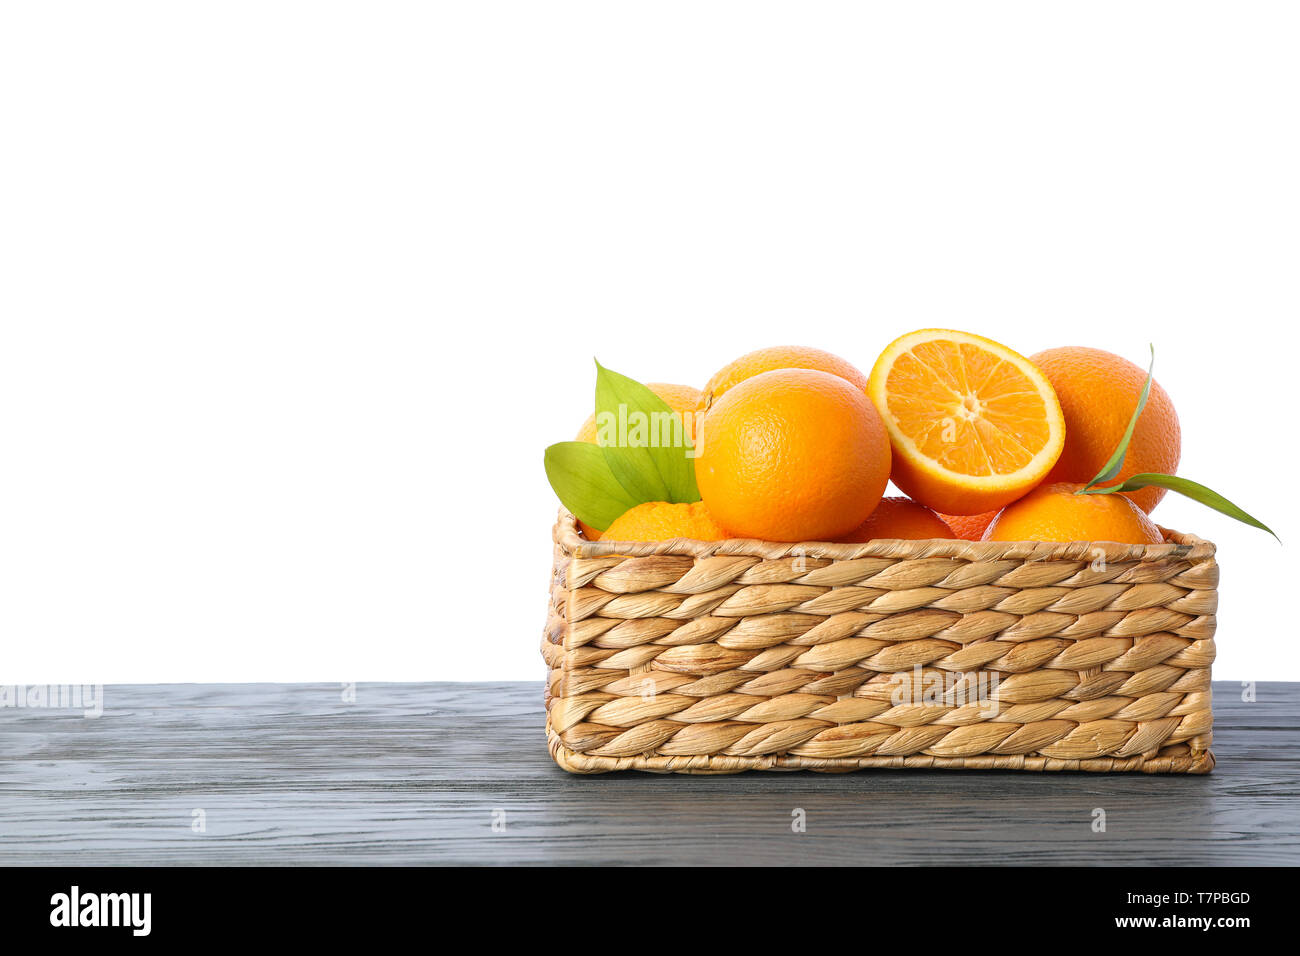 Wicker basket with ripe oranges on wooden table isolated on white background. Citrus food - Stock Image